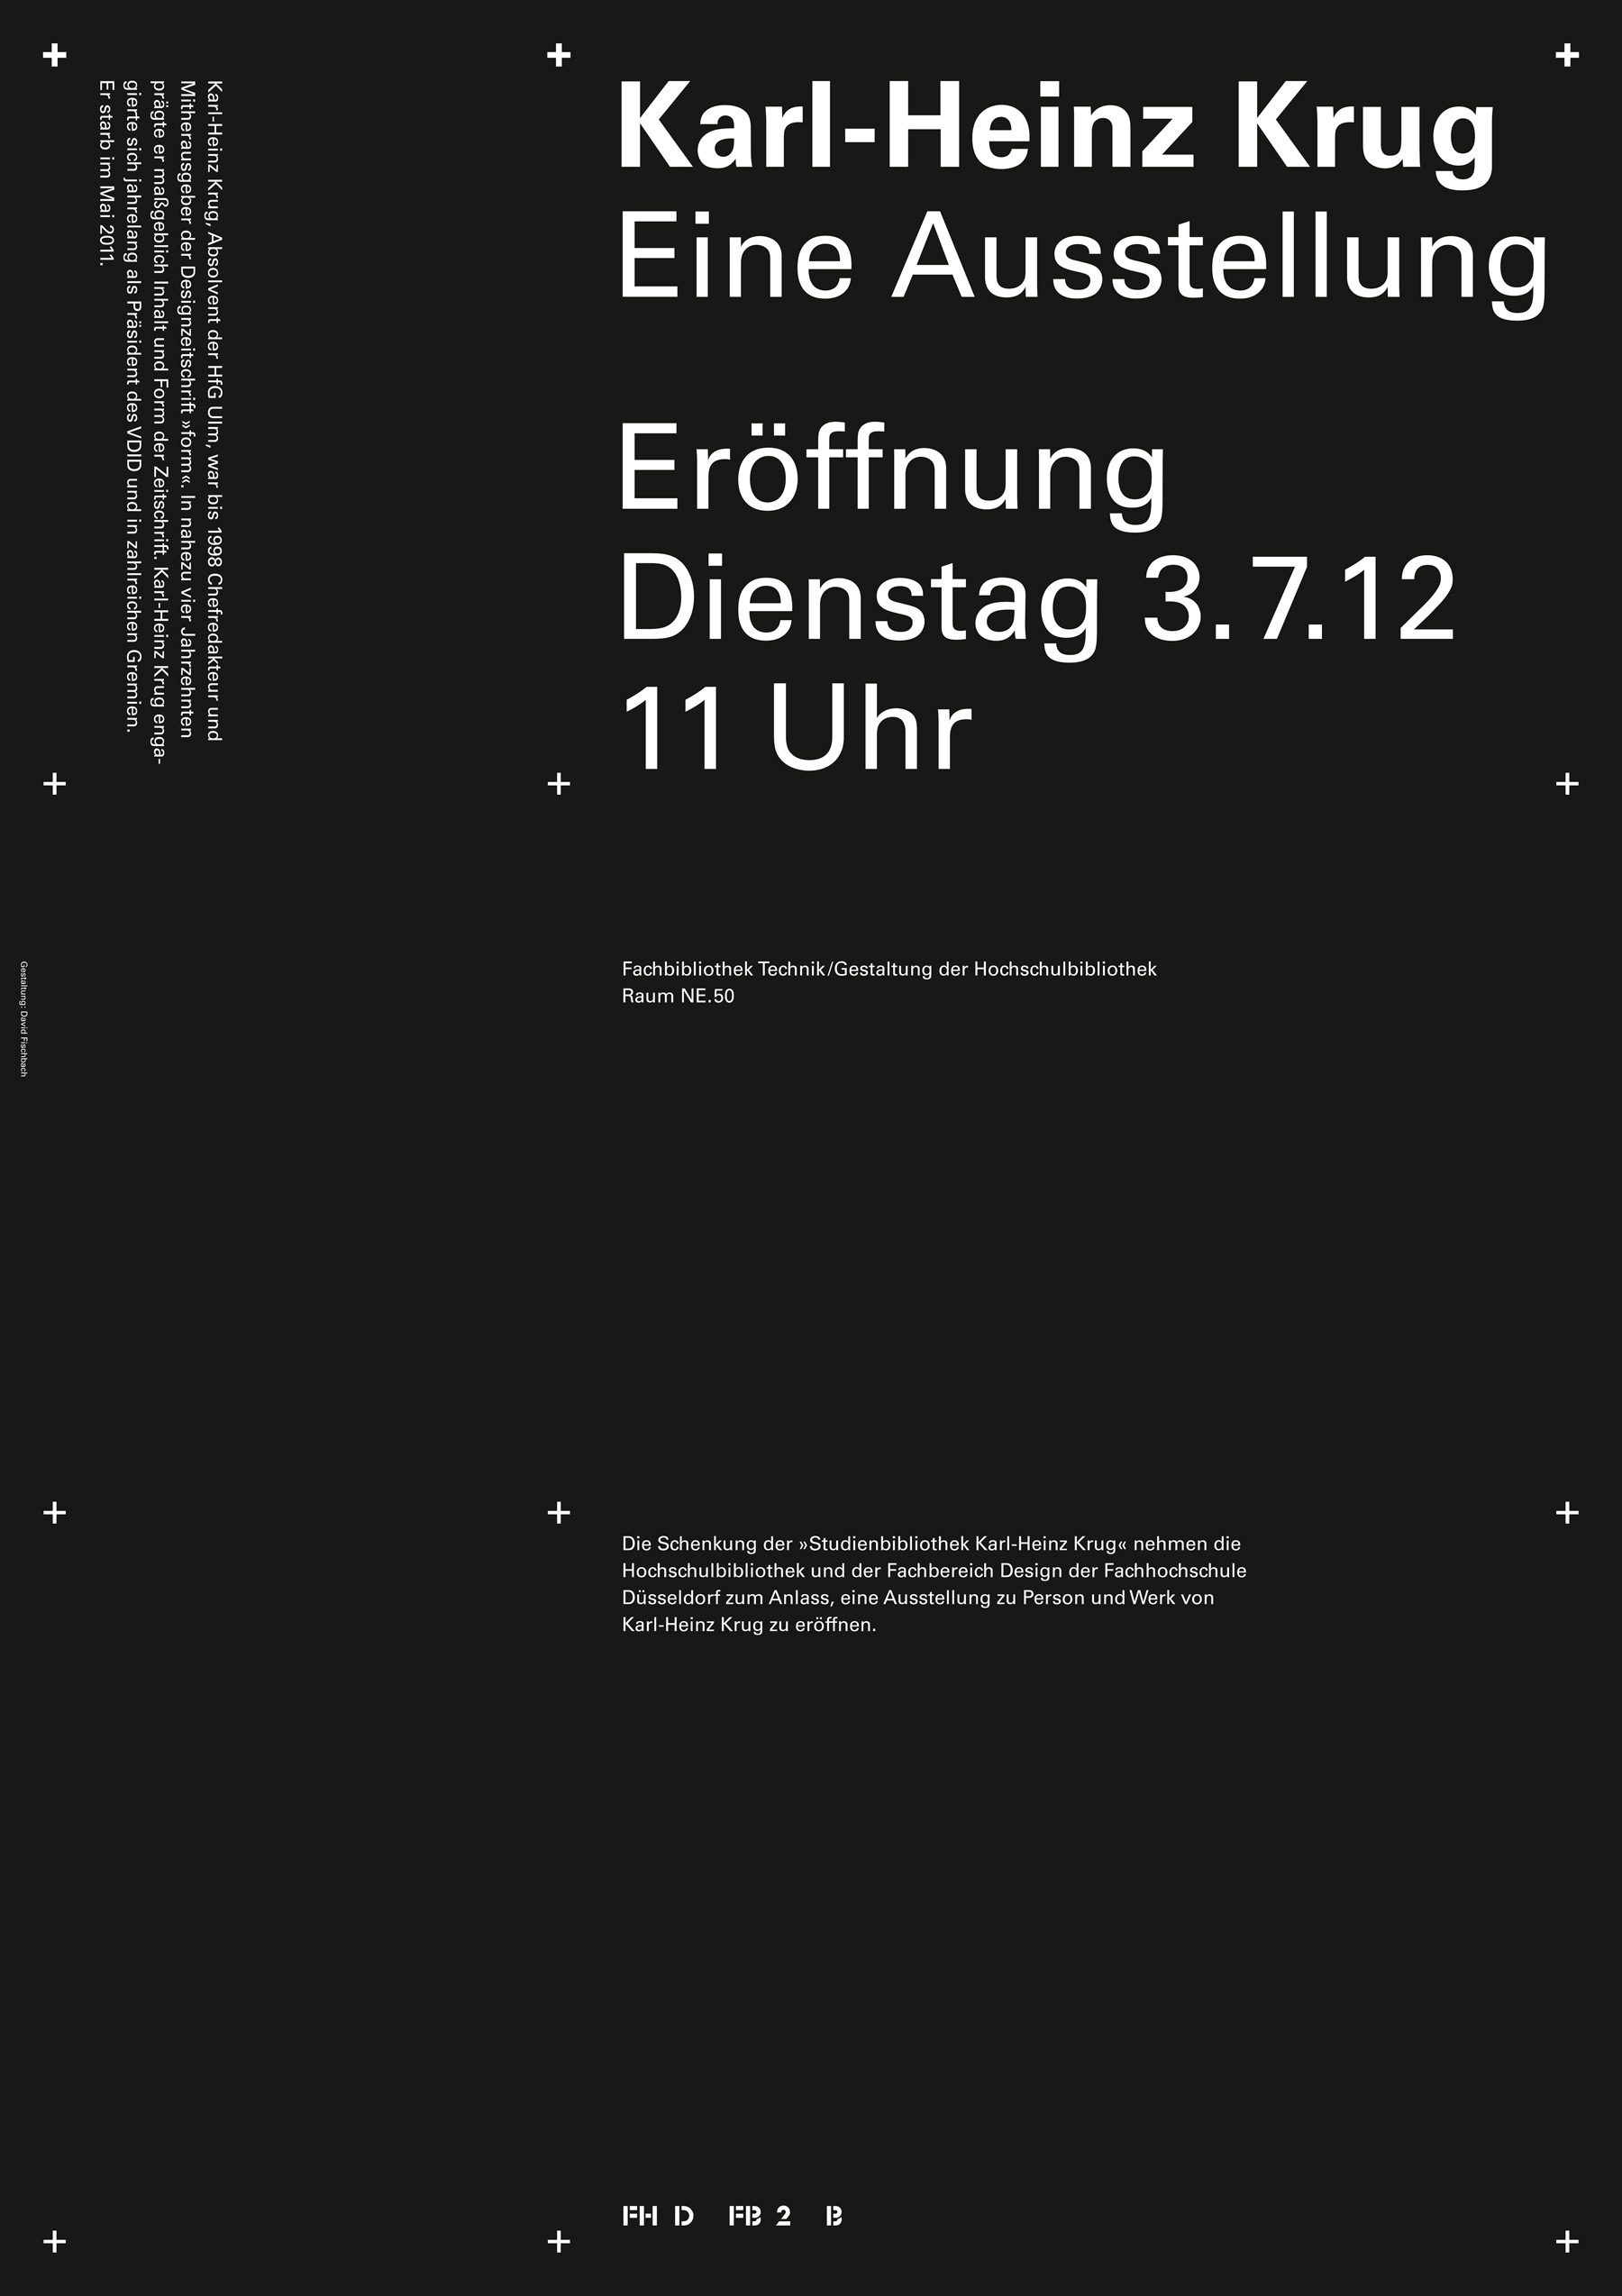 Poster, The Karl-Heinz Krug Research Library, black